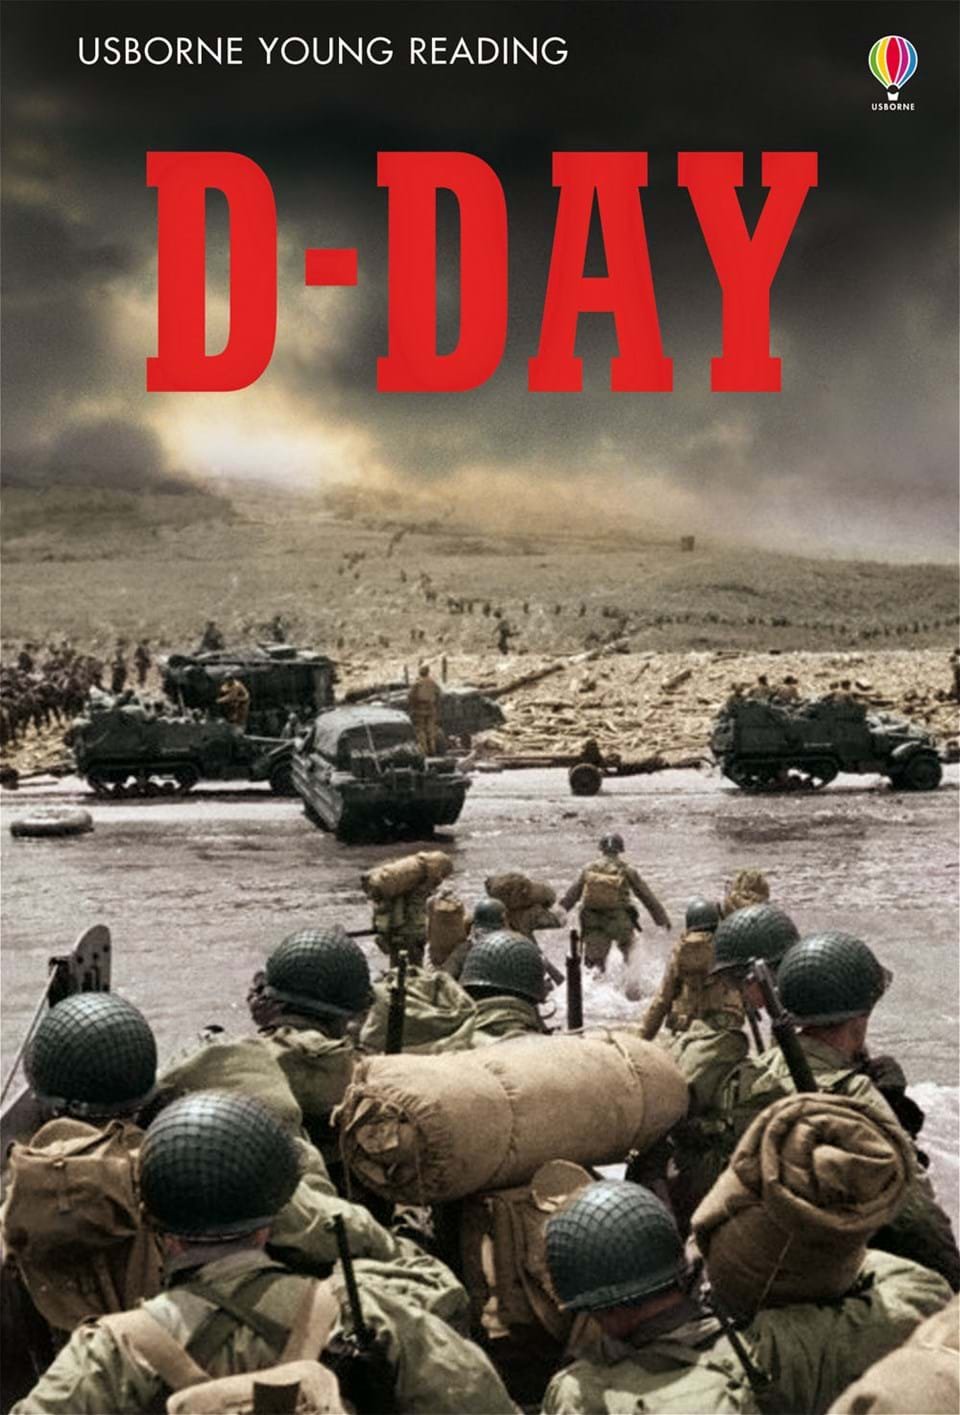 an introduction to the history of normandy Book a personalized tour and visit the historical sites at normandy learn about the fascinating history  normandy landing beaches  introduction to the history.